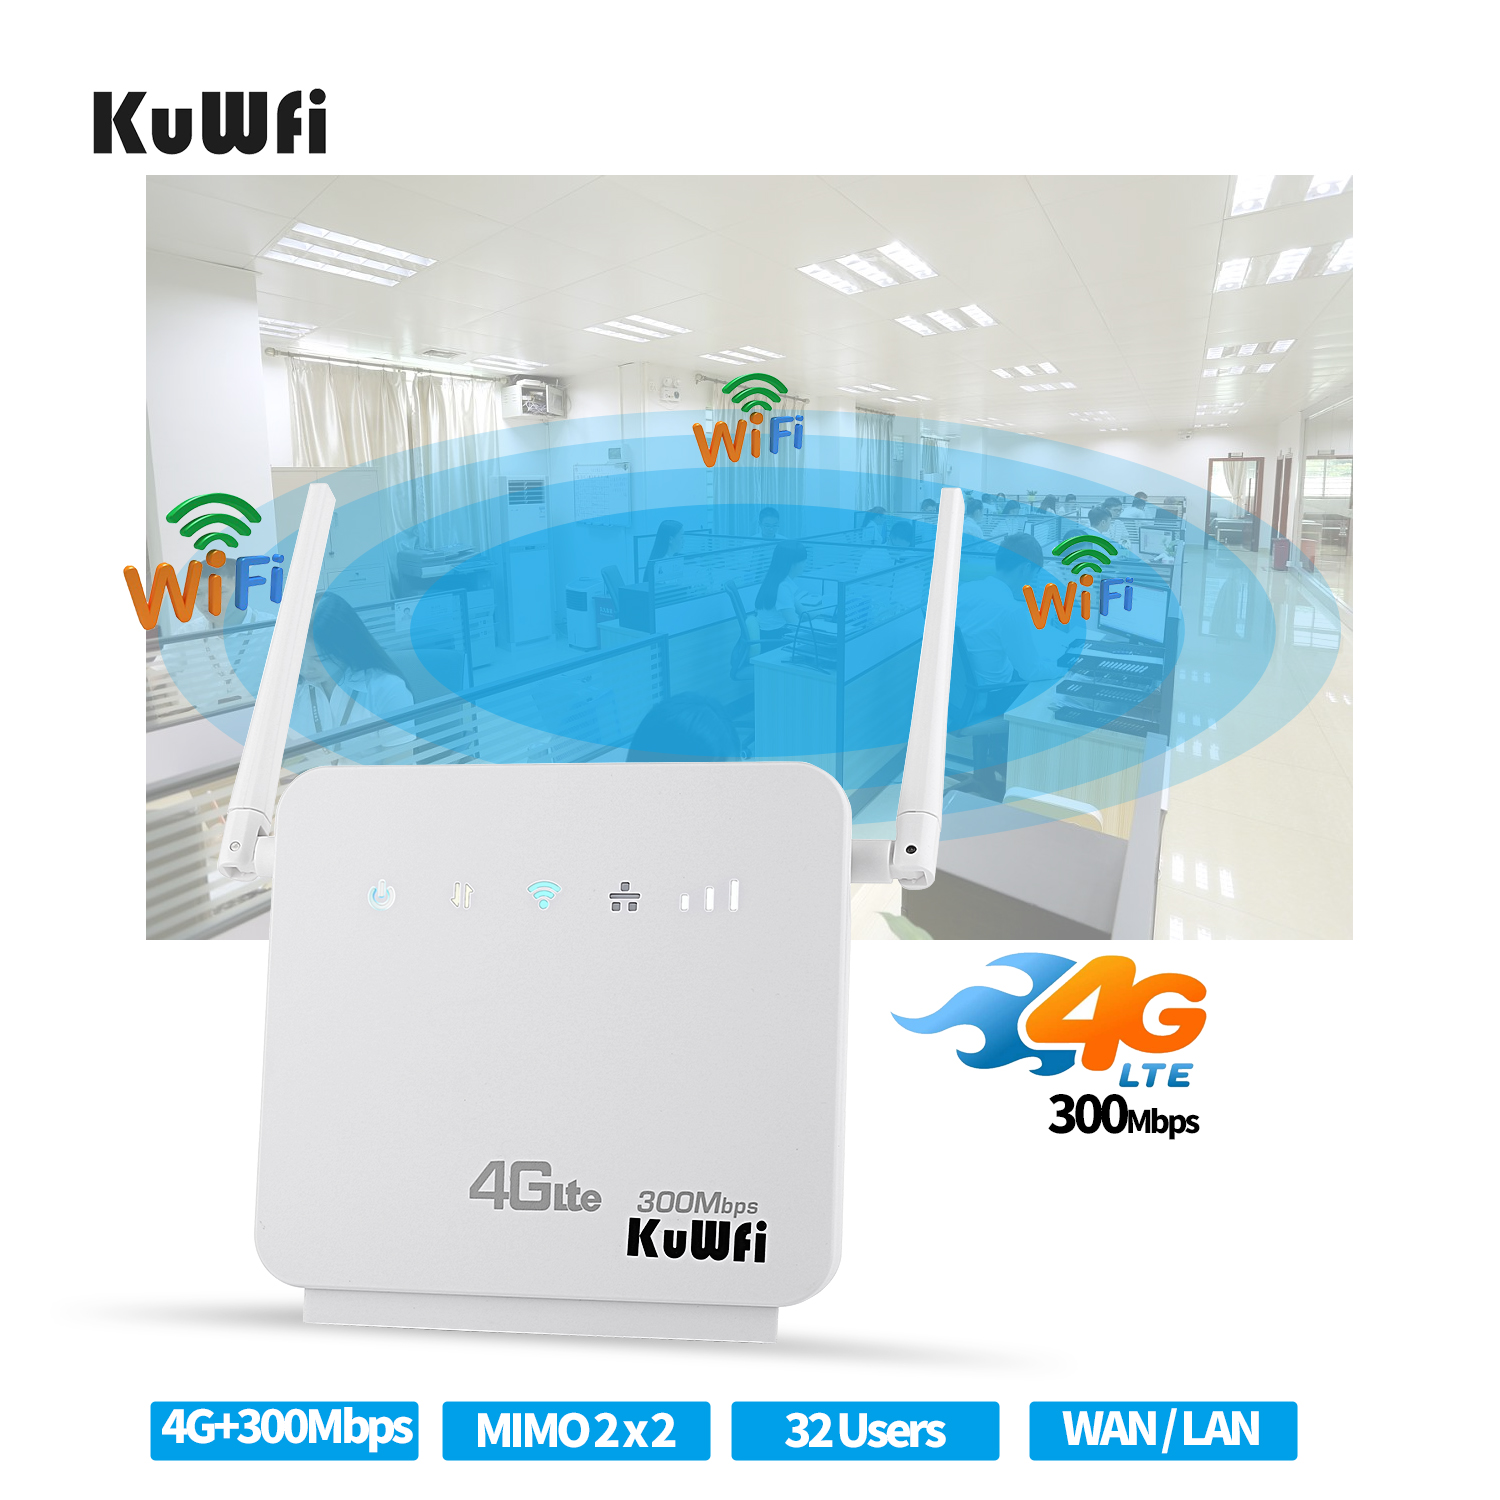 Unlocked 300Mbps Wifi Routers or 4G LTE CPE Mobile Router with LAN Port Support and SIM card 15